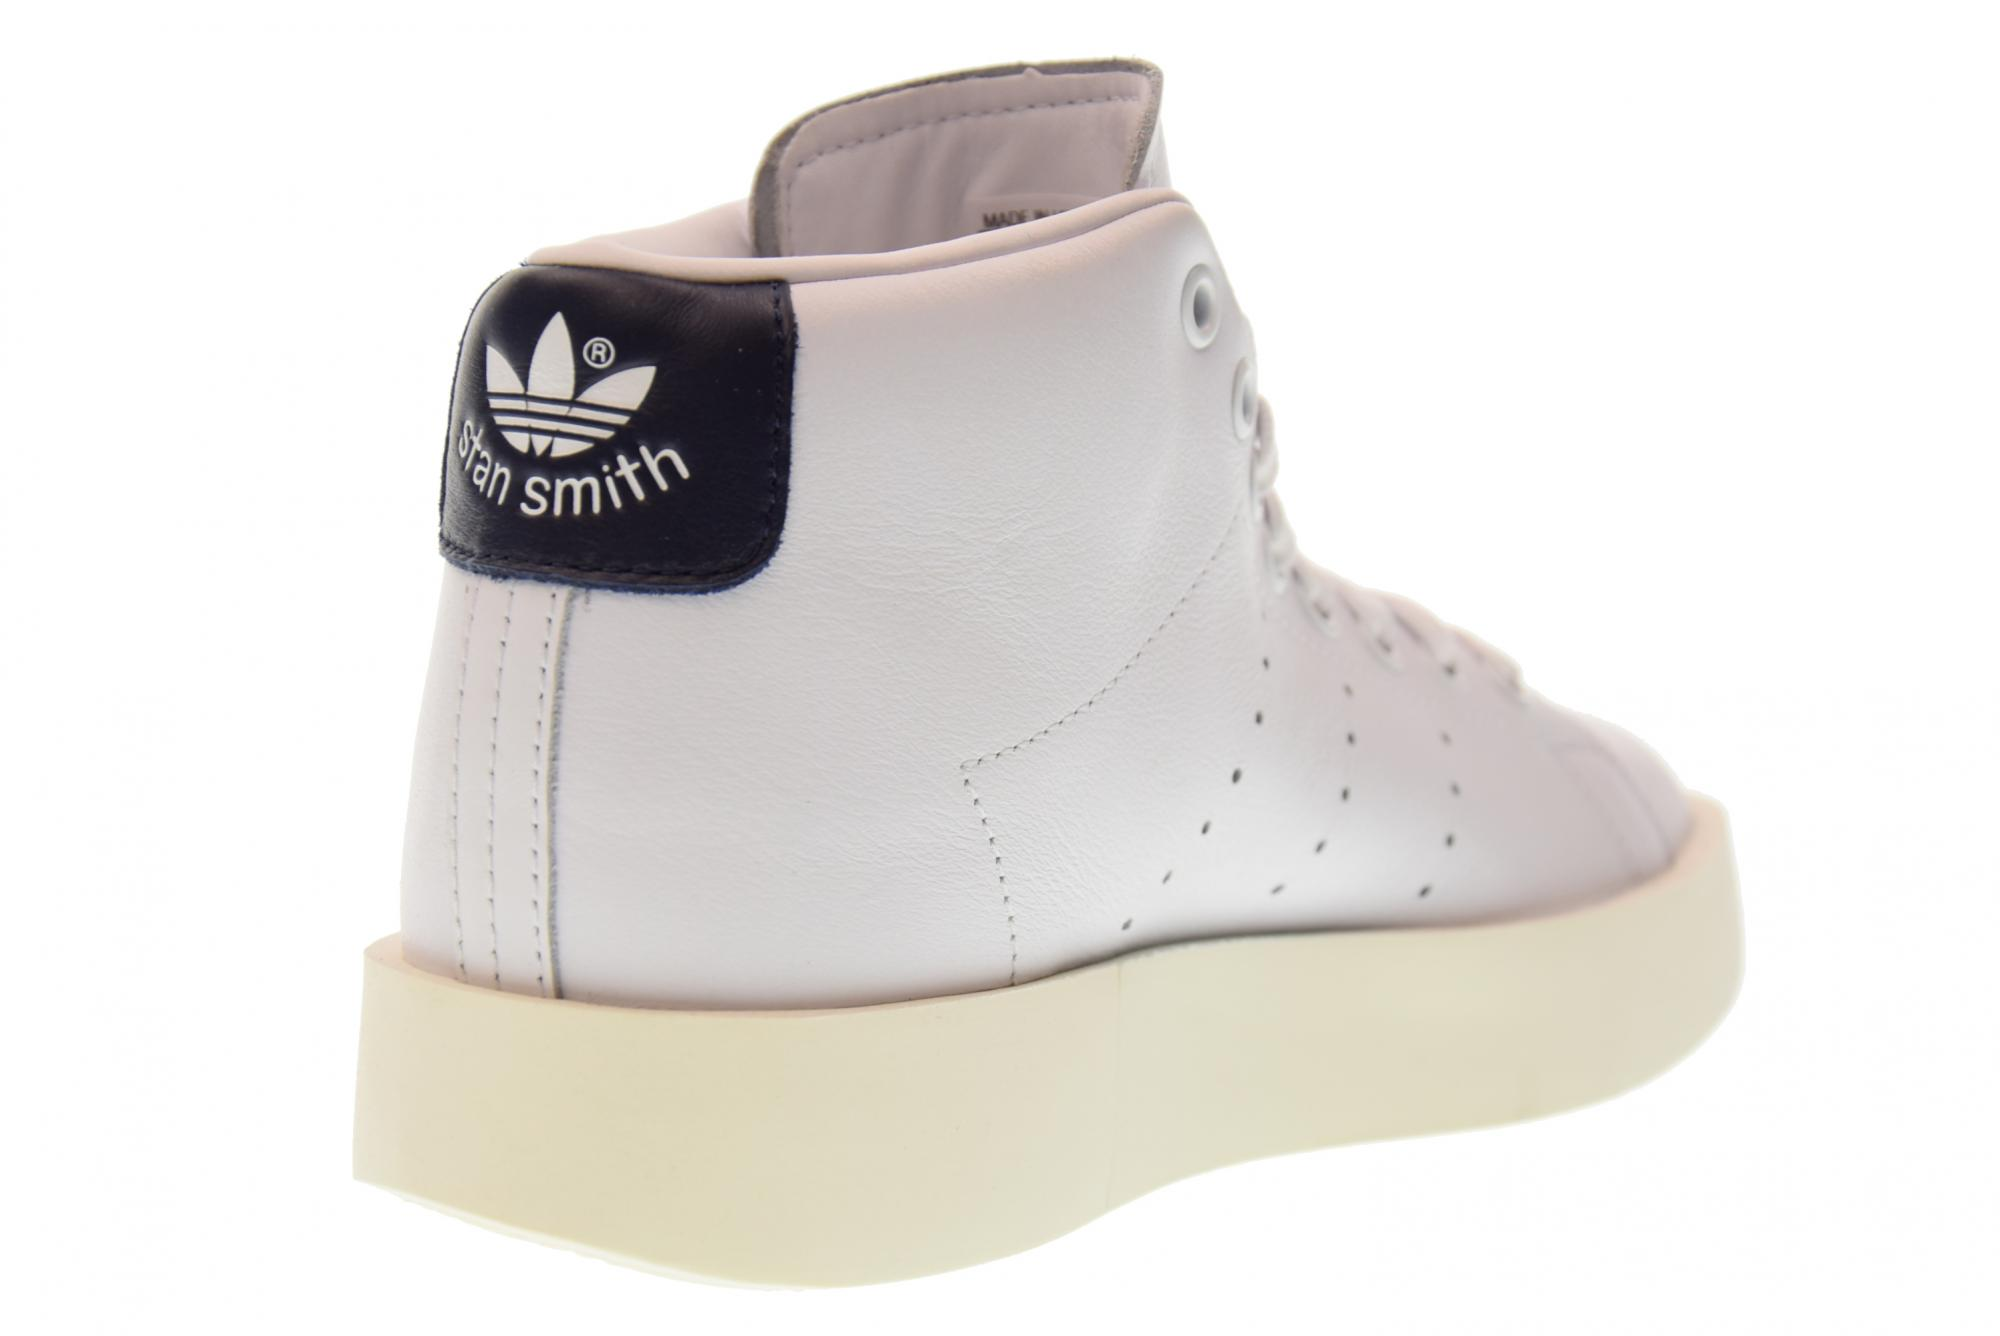 Adidas SMITH A17g BY9664 alta plataforma zapatillas botas STAN SMITH Adidas MID negrita 3f8e99